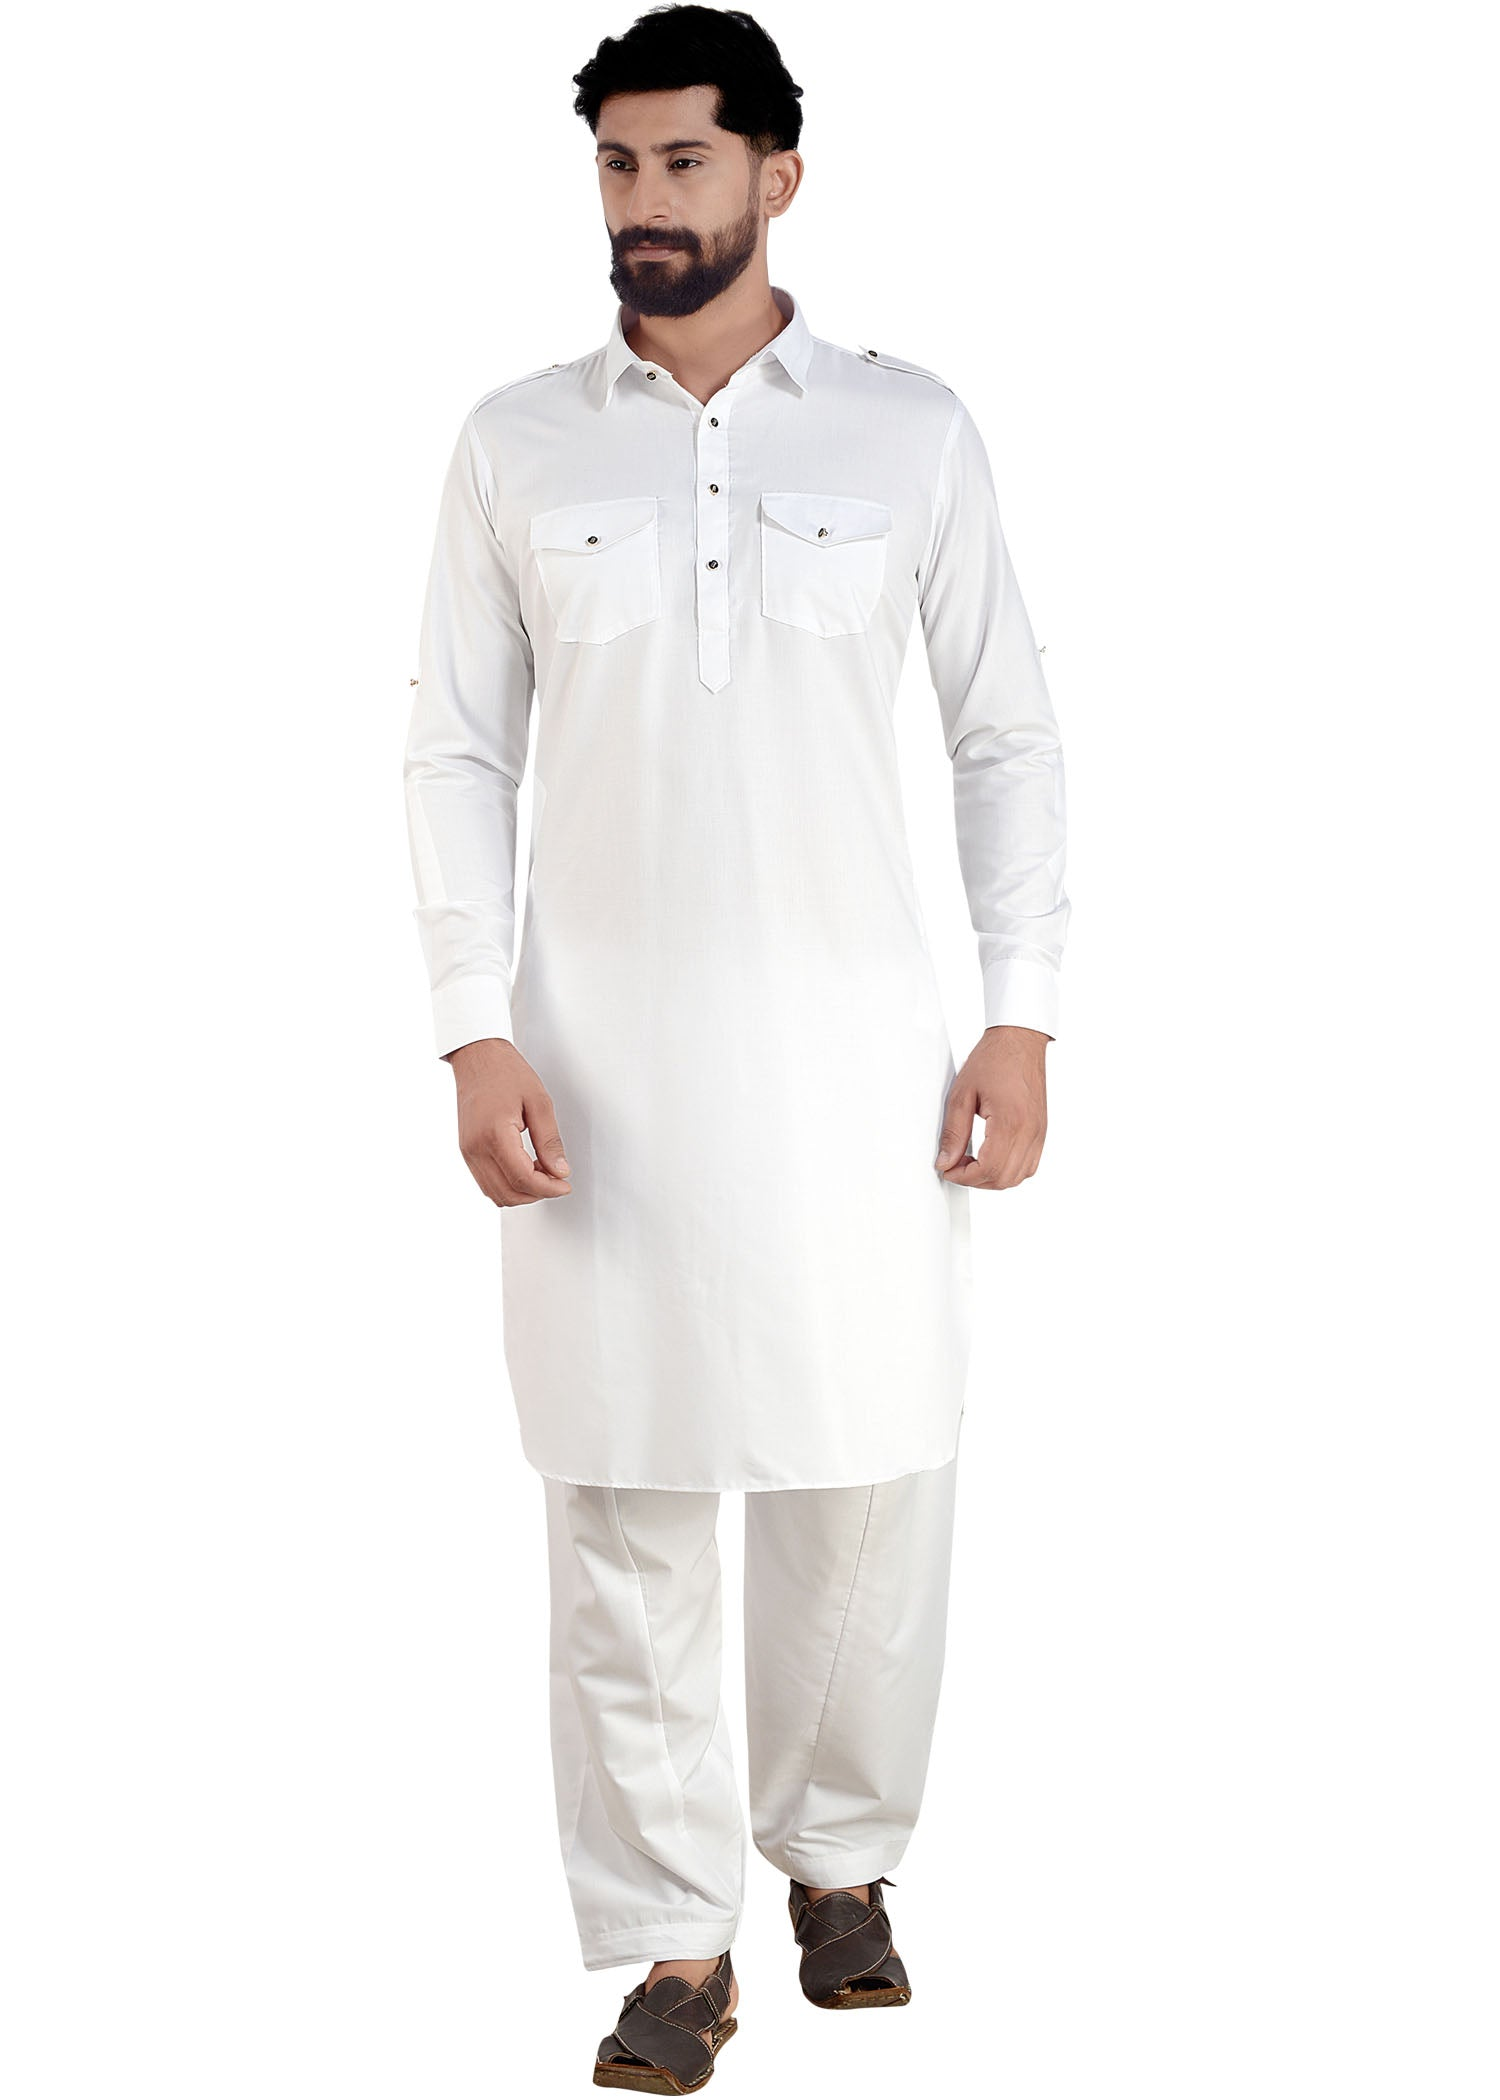 White Soft Polyester Cotton Pathani Suit